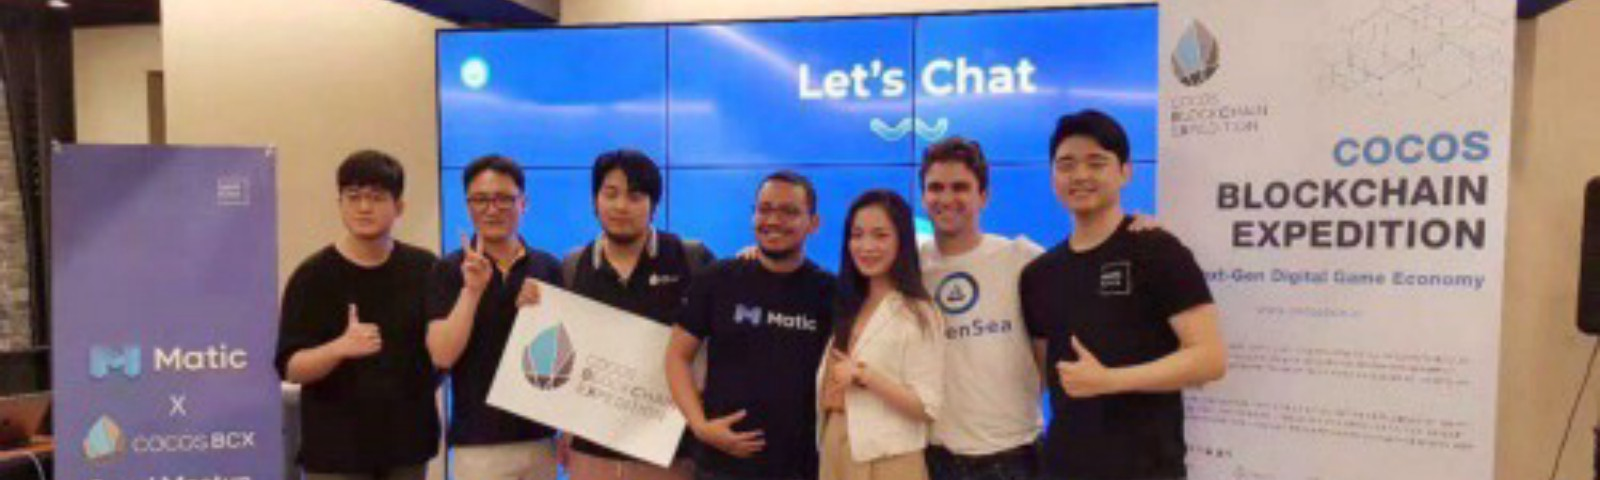 Matic at Seoul Meetup with Cocos blockchain expedition